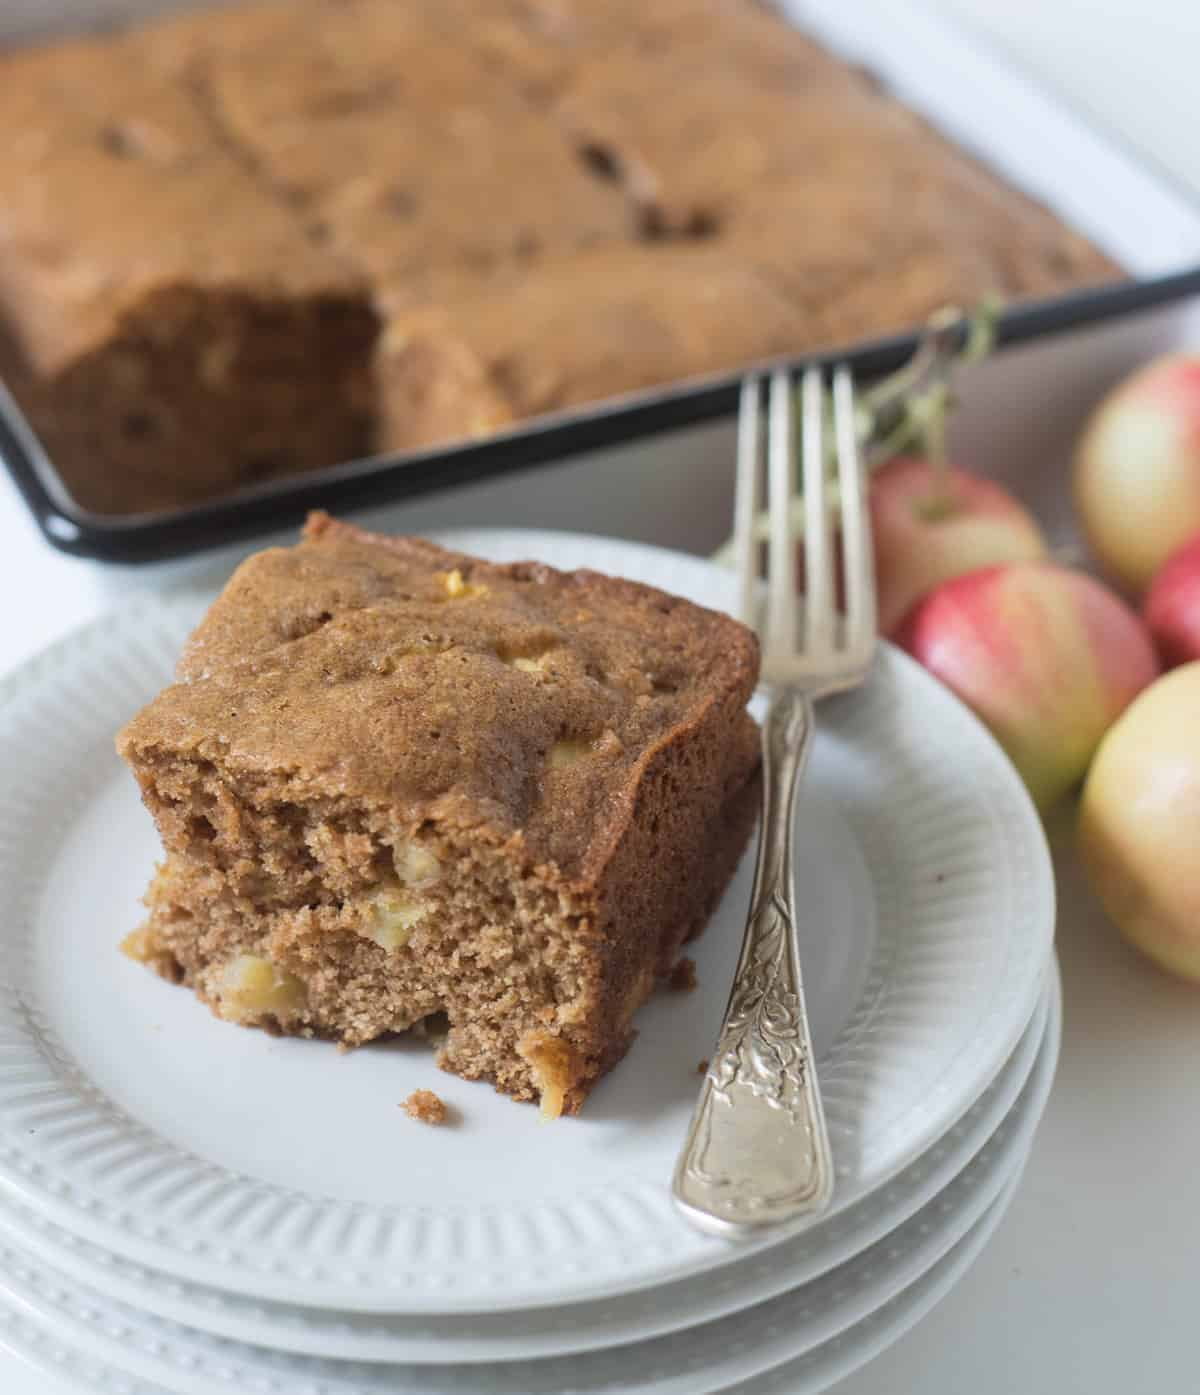 A plate with a square piece of easy apple cake and a fork